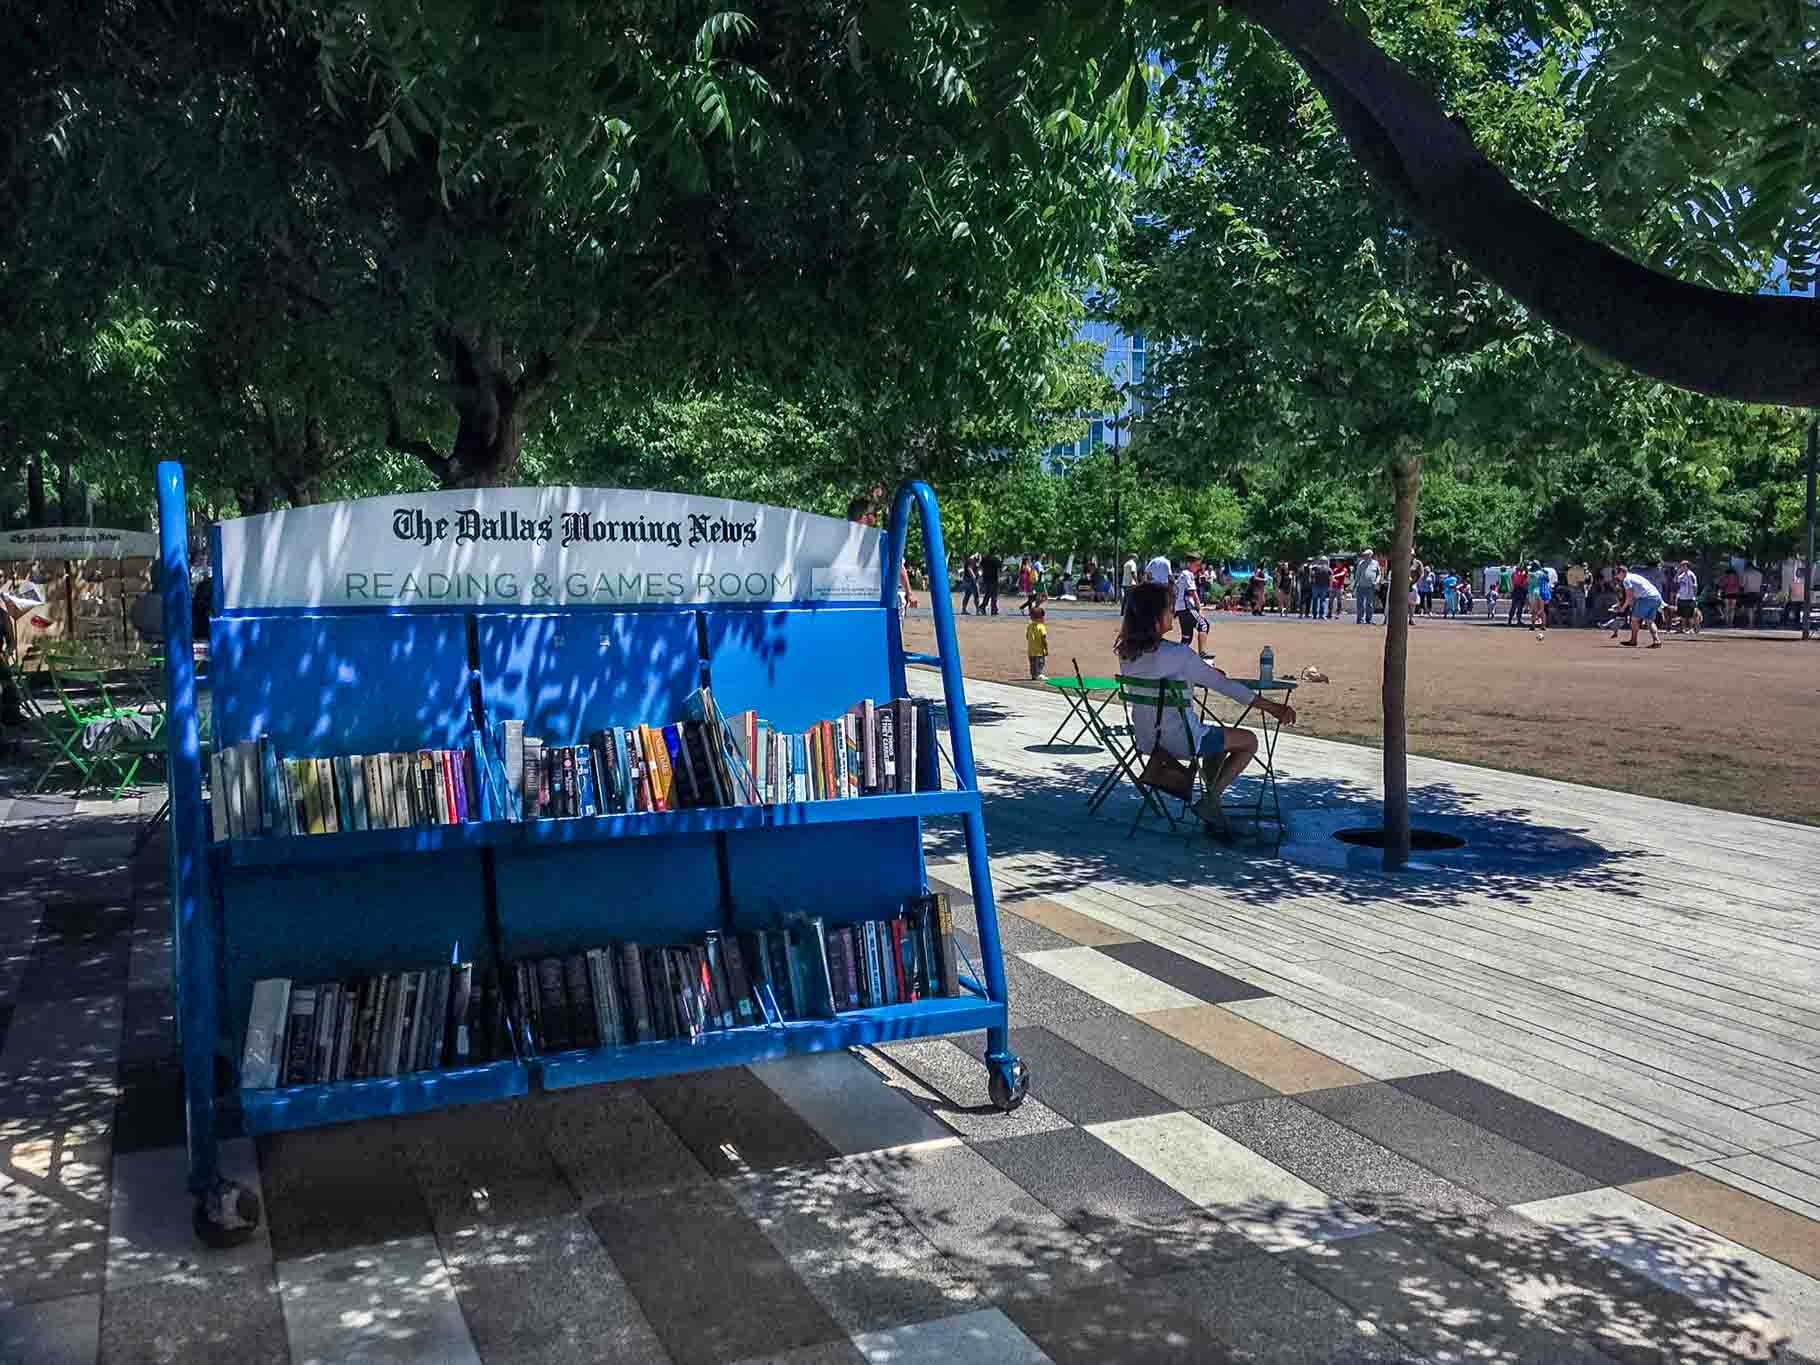 Reading area and books on shelf in a park